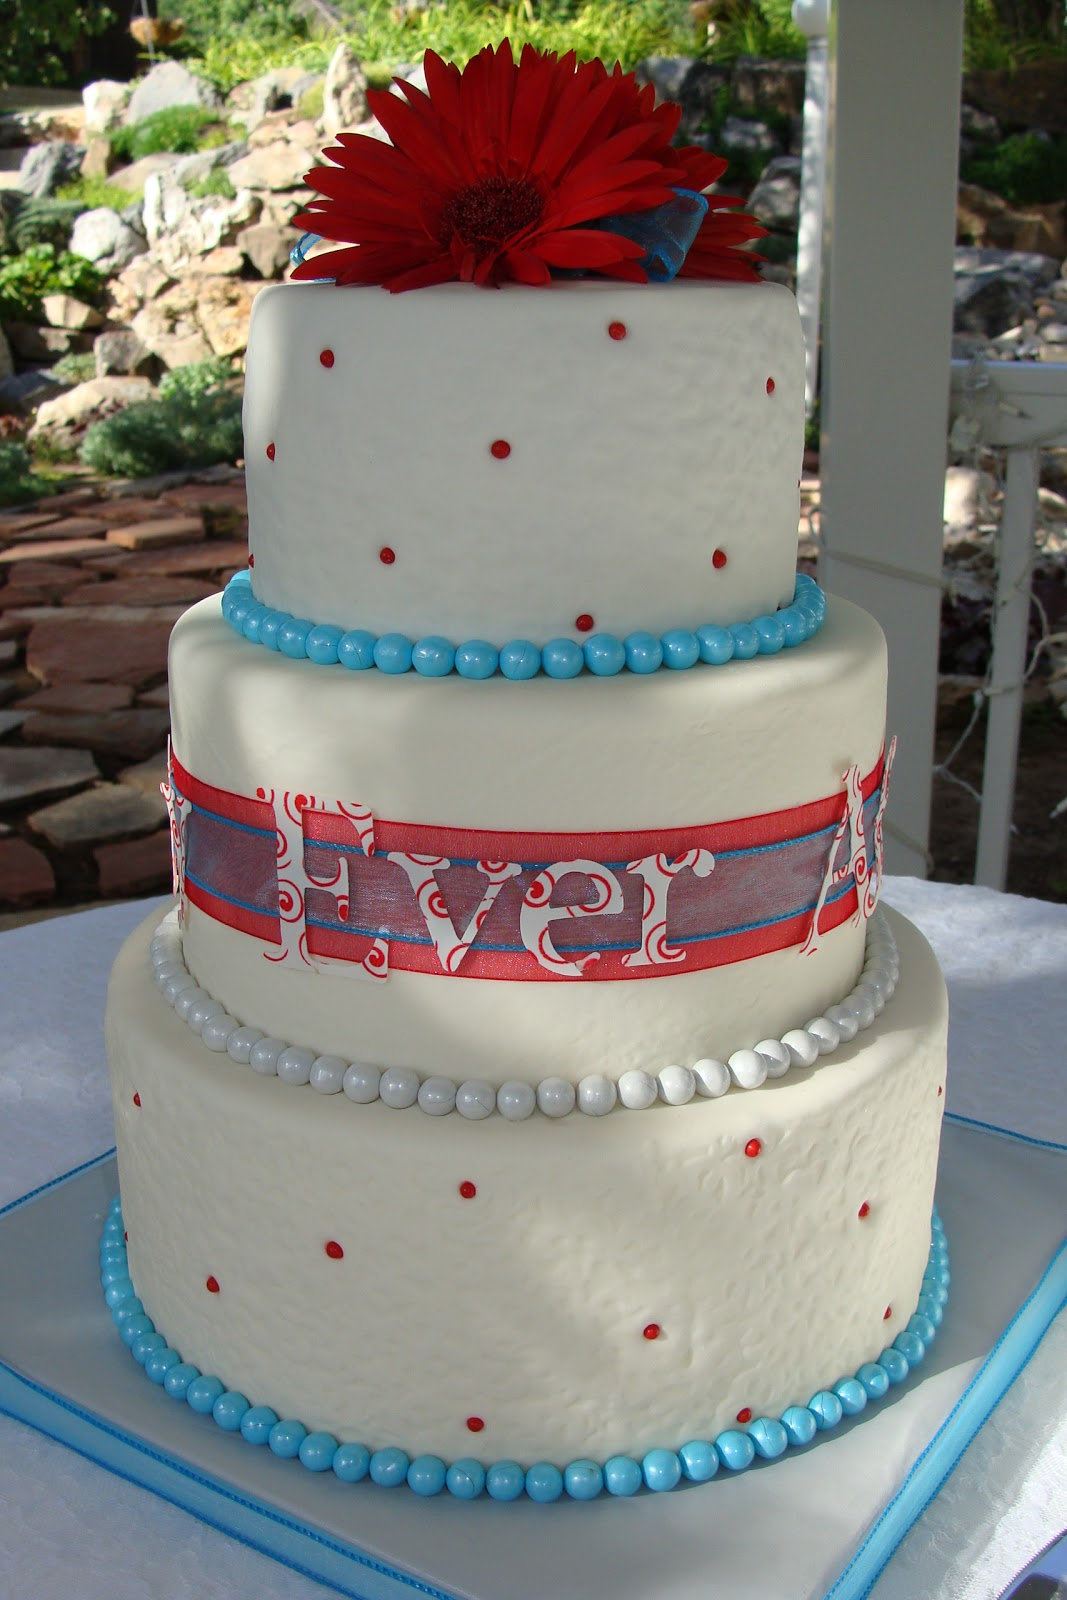 Amber s Cakes Blue and Red Happily Ever After Wedding Cake